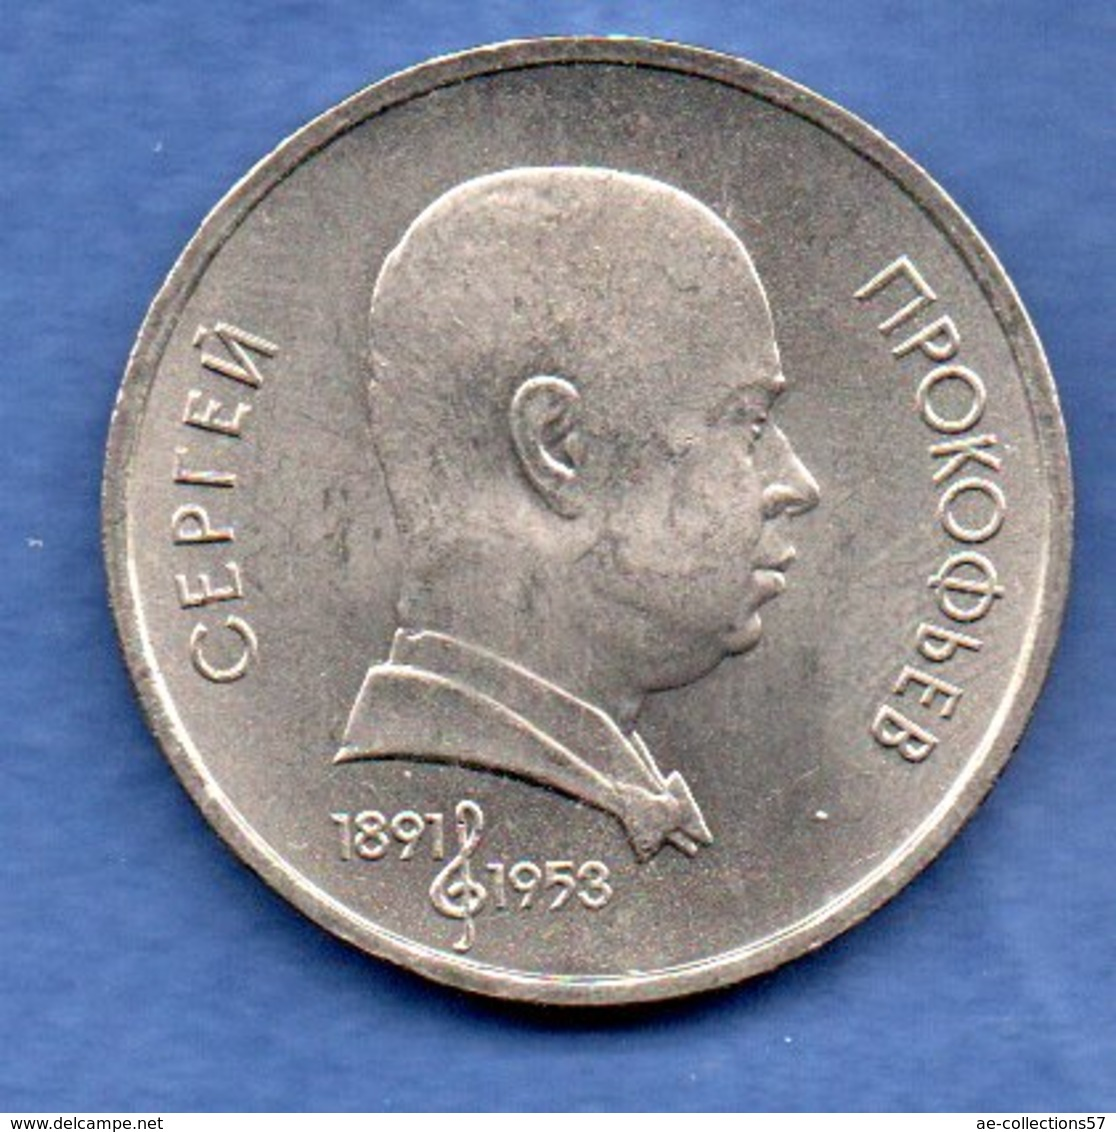 Russie --  1 Rouble 1991  -  Km # 263 -  état  SUP - Russia